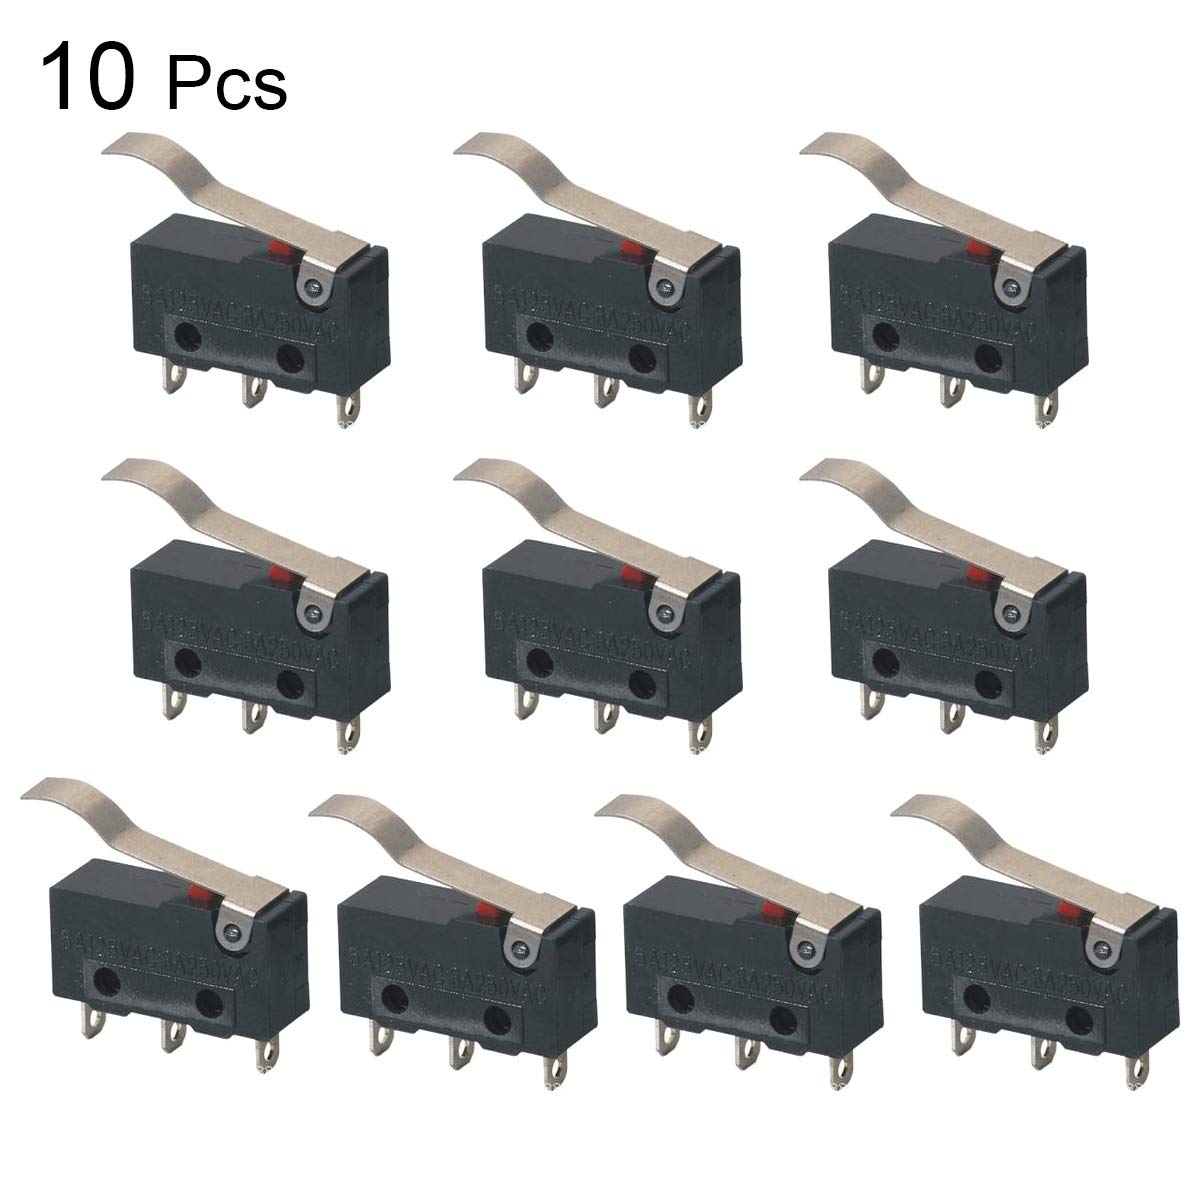 Loweryeah Mini Micro Switch k11 Curved Handle Micro motion250V 5A 10pcs